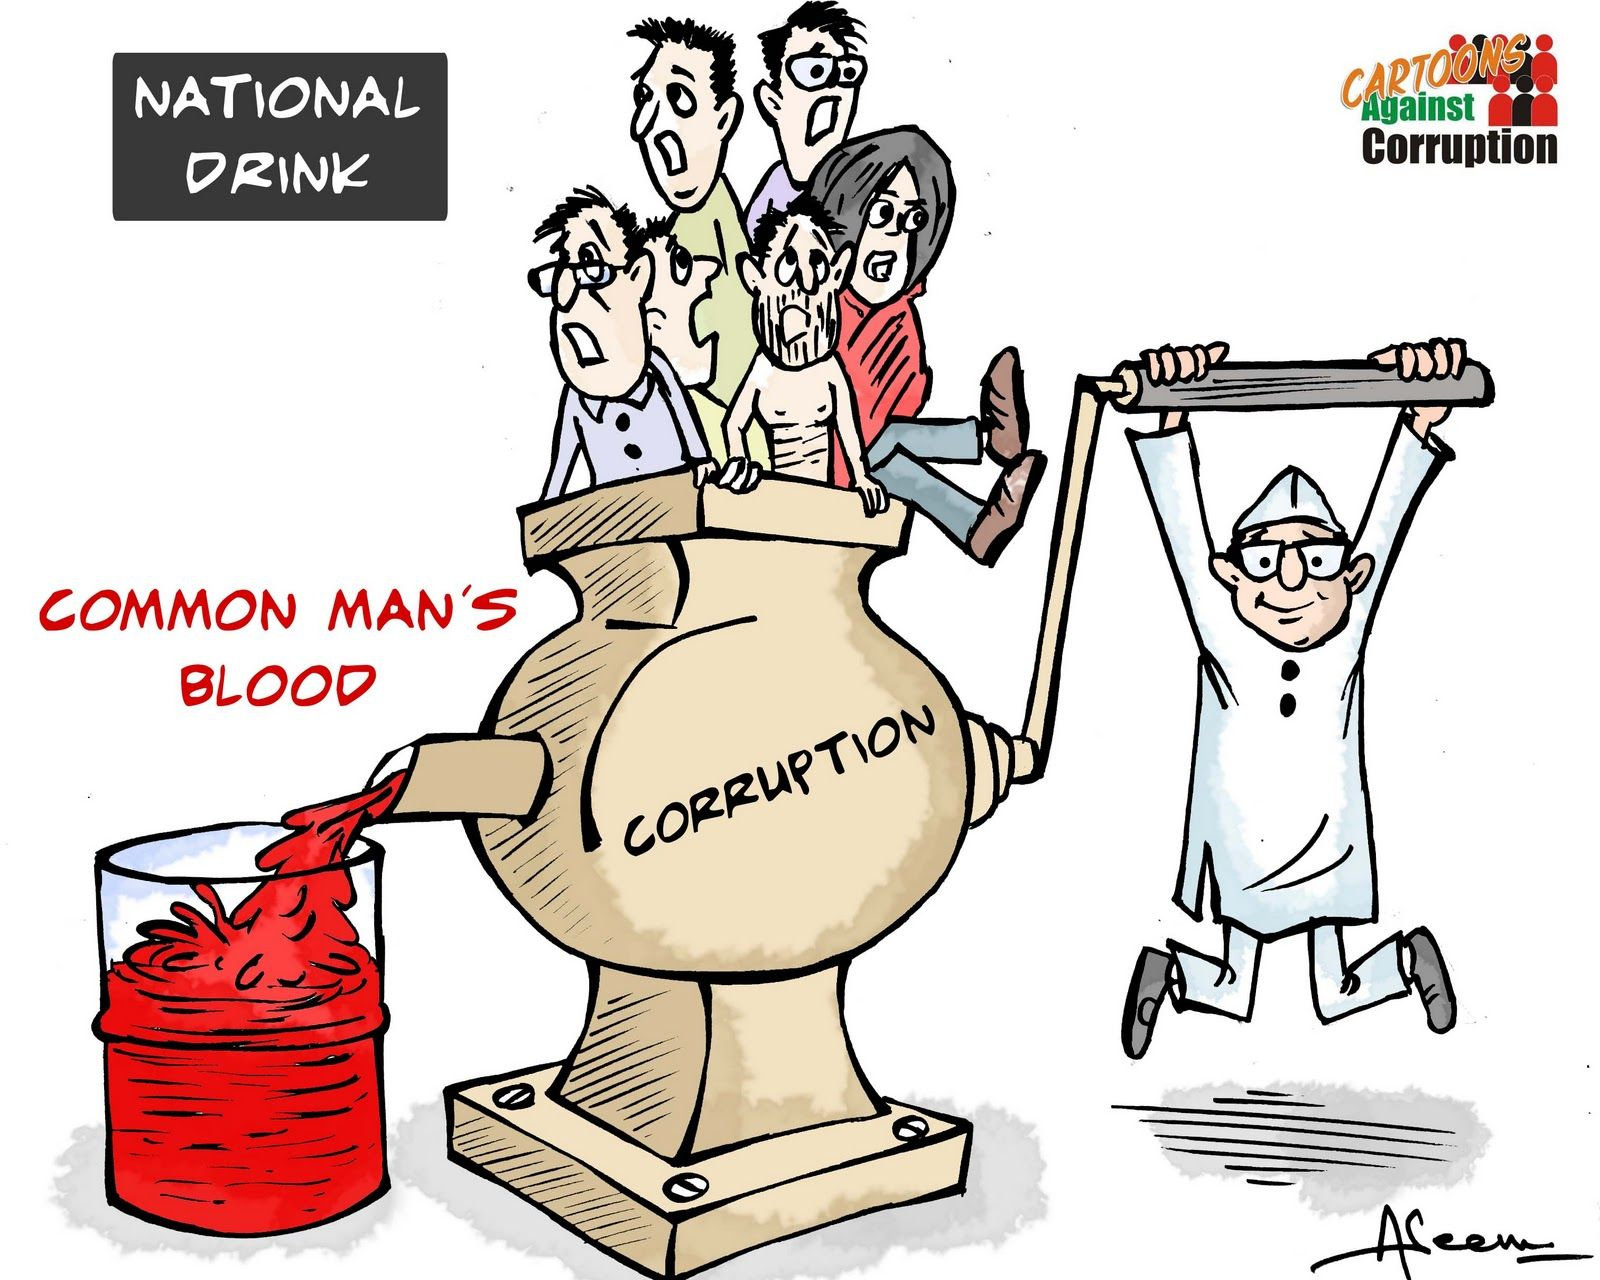 Cartoonist Aseem Trivedi Charged With Treason And